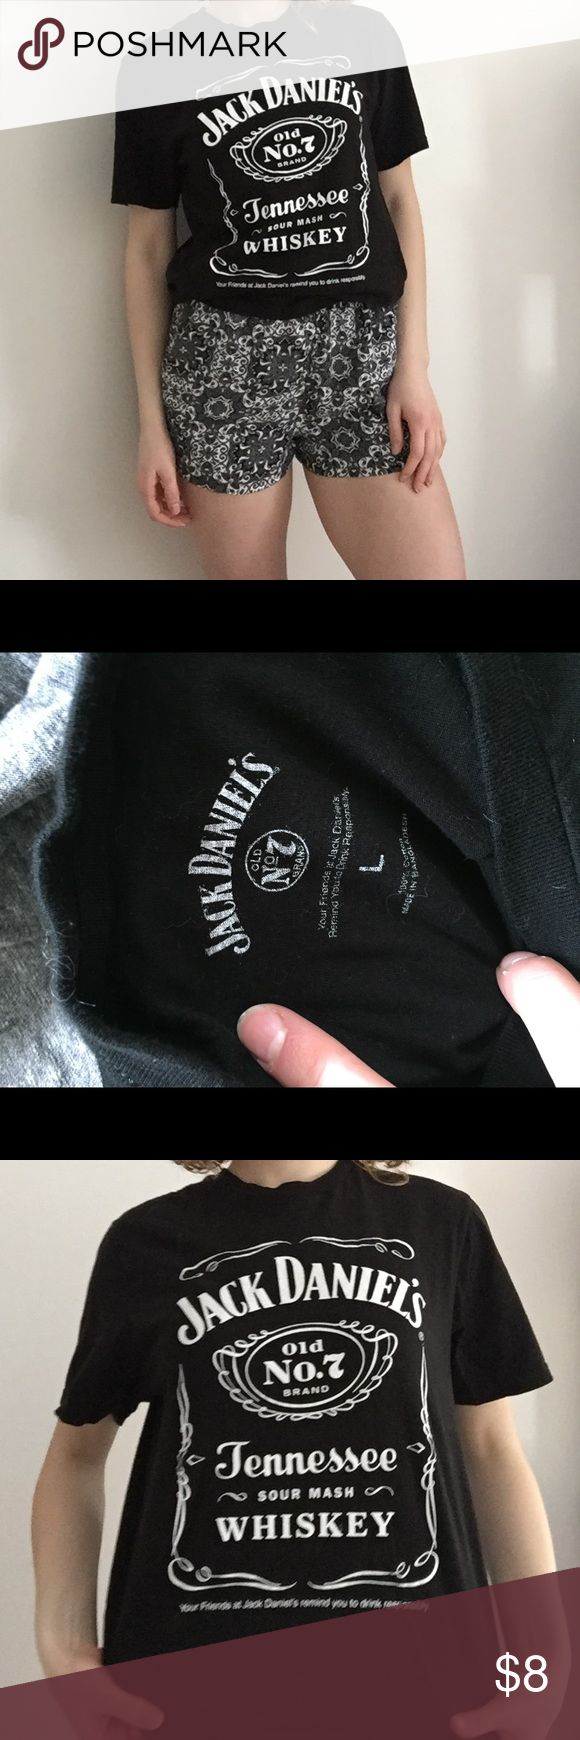 Jack daniels T-shirt Black jack Daniels T-shirt. I am pictured wearing a L but I received a large shipment of these from a bar promotion and have a variety of sizes left in men's. I only have mediums left in women's sized but they are all unworn and new (they didn't come with tags but in original packaging) jack daniels Tops Tees - Short Sleeve